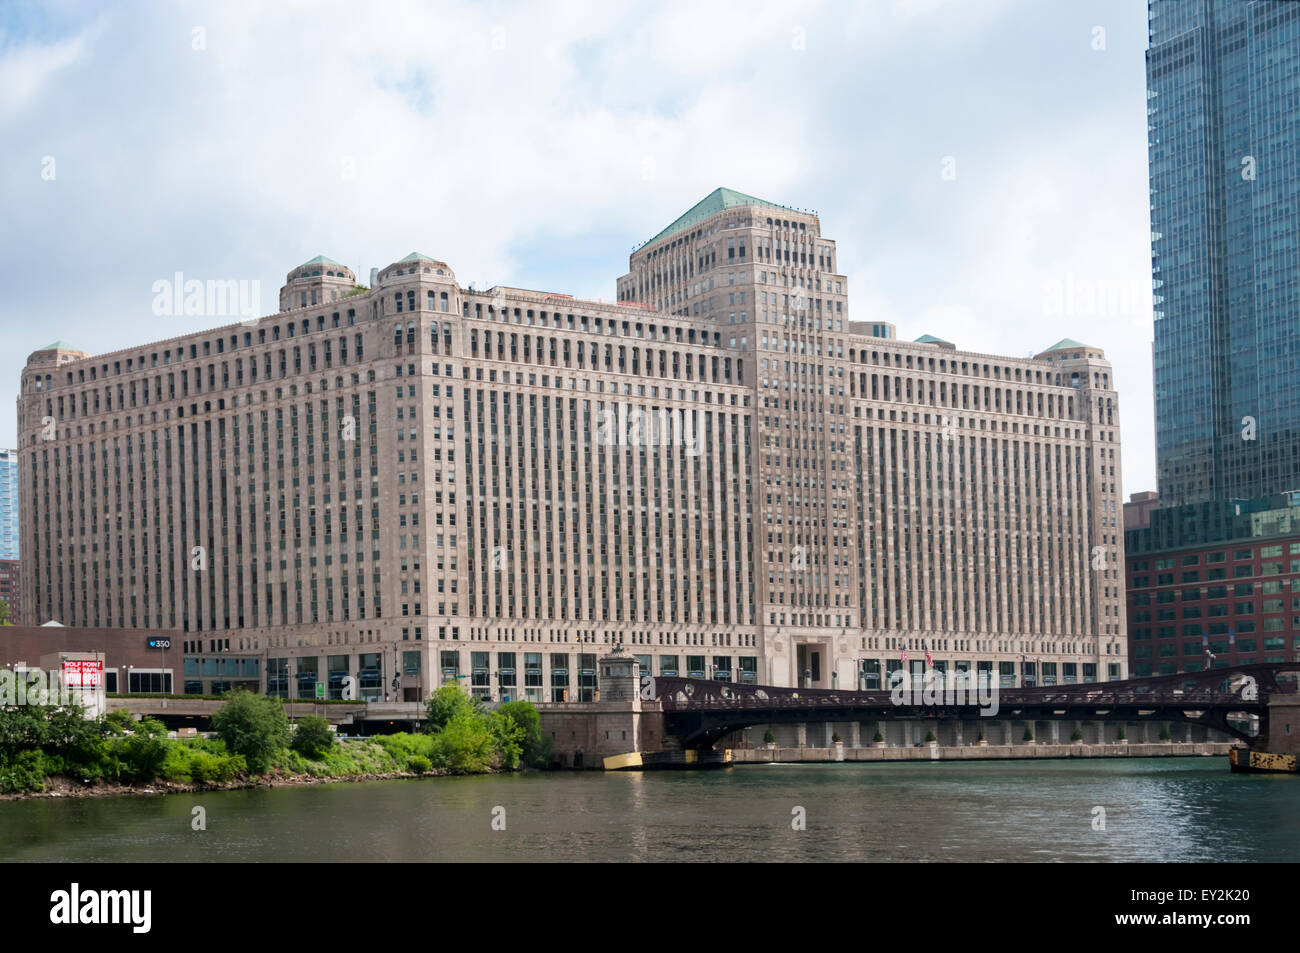 The 1930s Merchandise Mart in Chicago was originally a distribution centre for Marshall Field & Company. - Stock Image